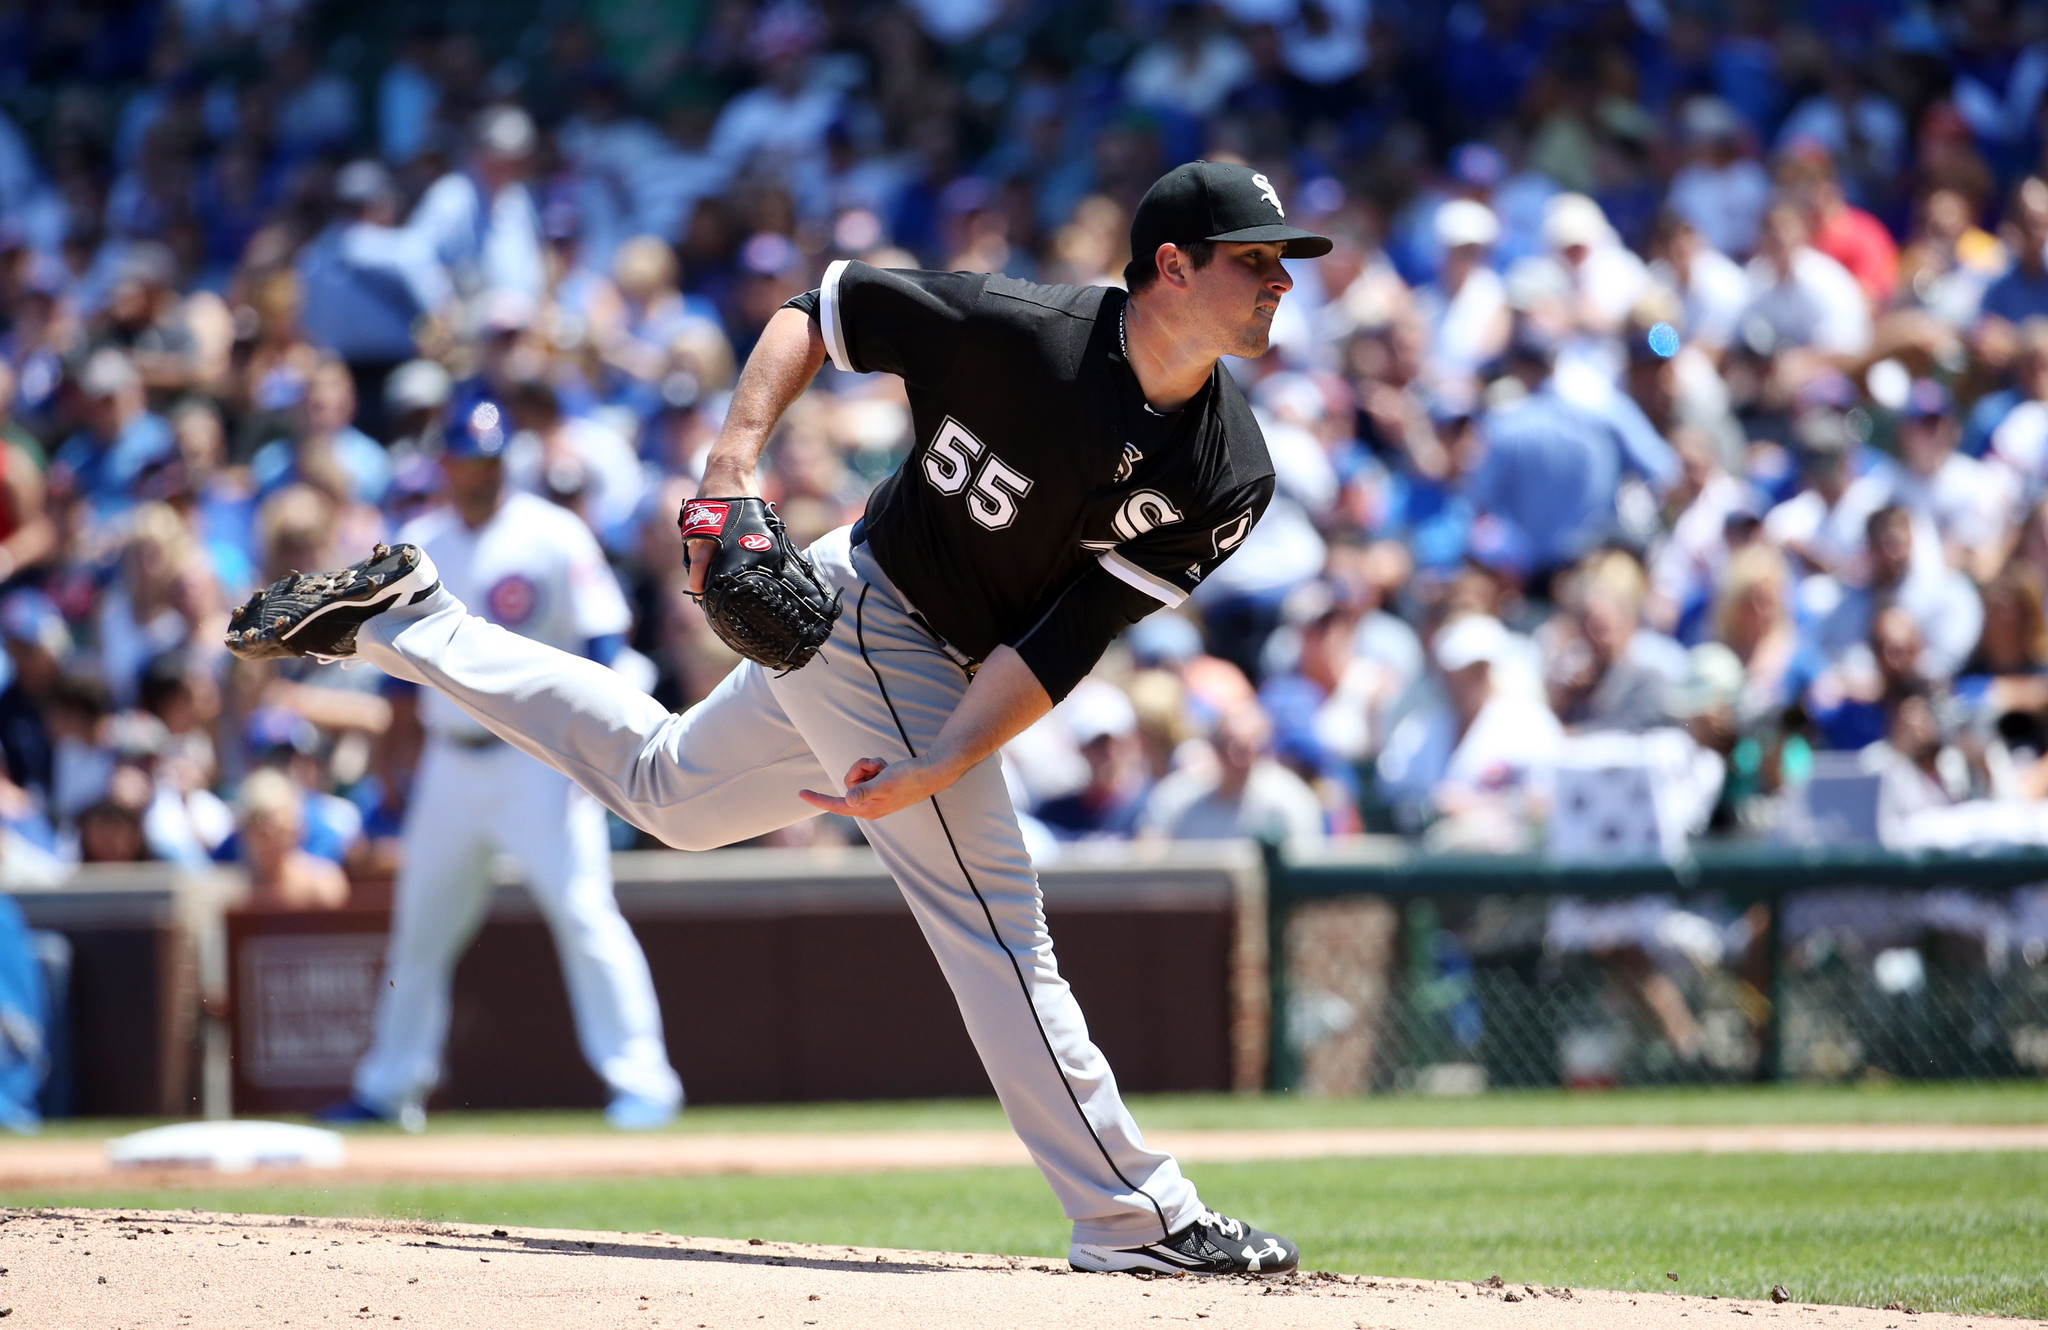 Ct-tough-day-carlos-rodon-white-sox-spt-0726-20170725